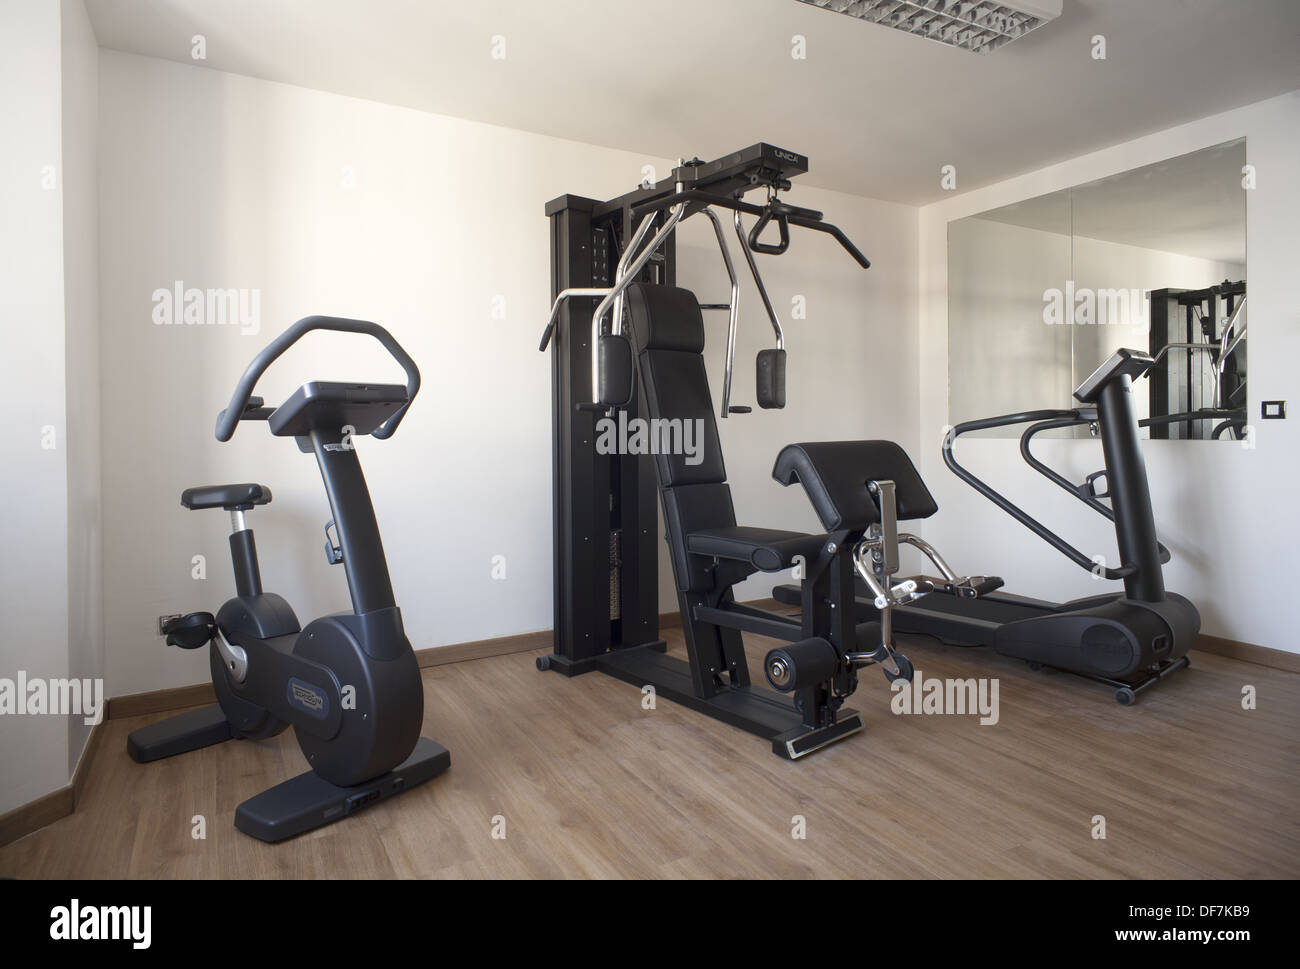 Small gym room in a private house stock photo  alamy